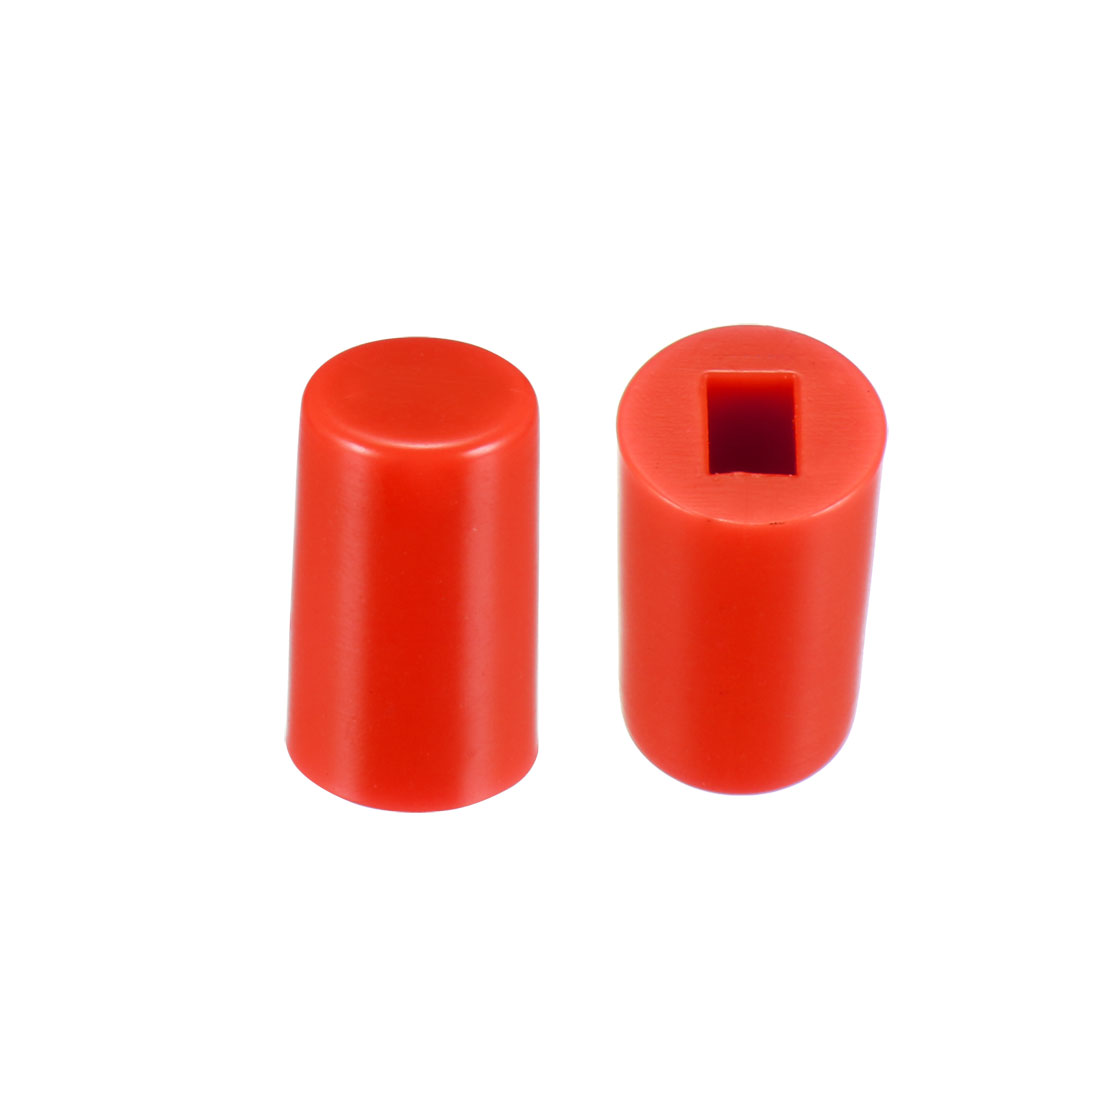 40Pcs Plastic 6x10mm Latching Pushbutton Tactile Switch Caps Cover Keycaps Red